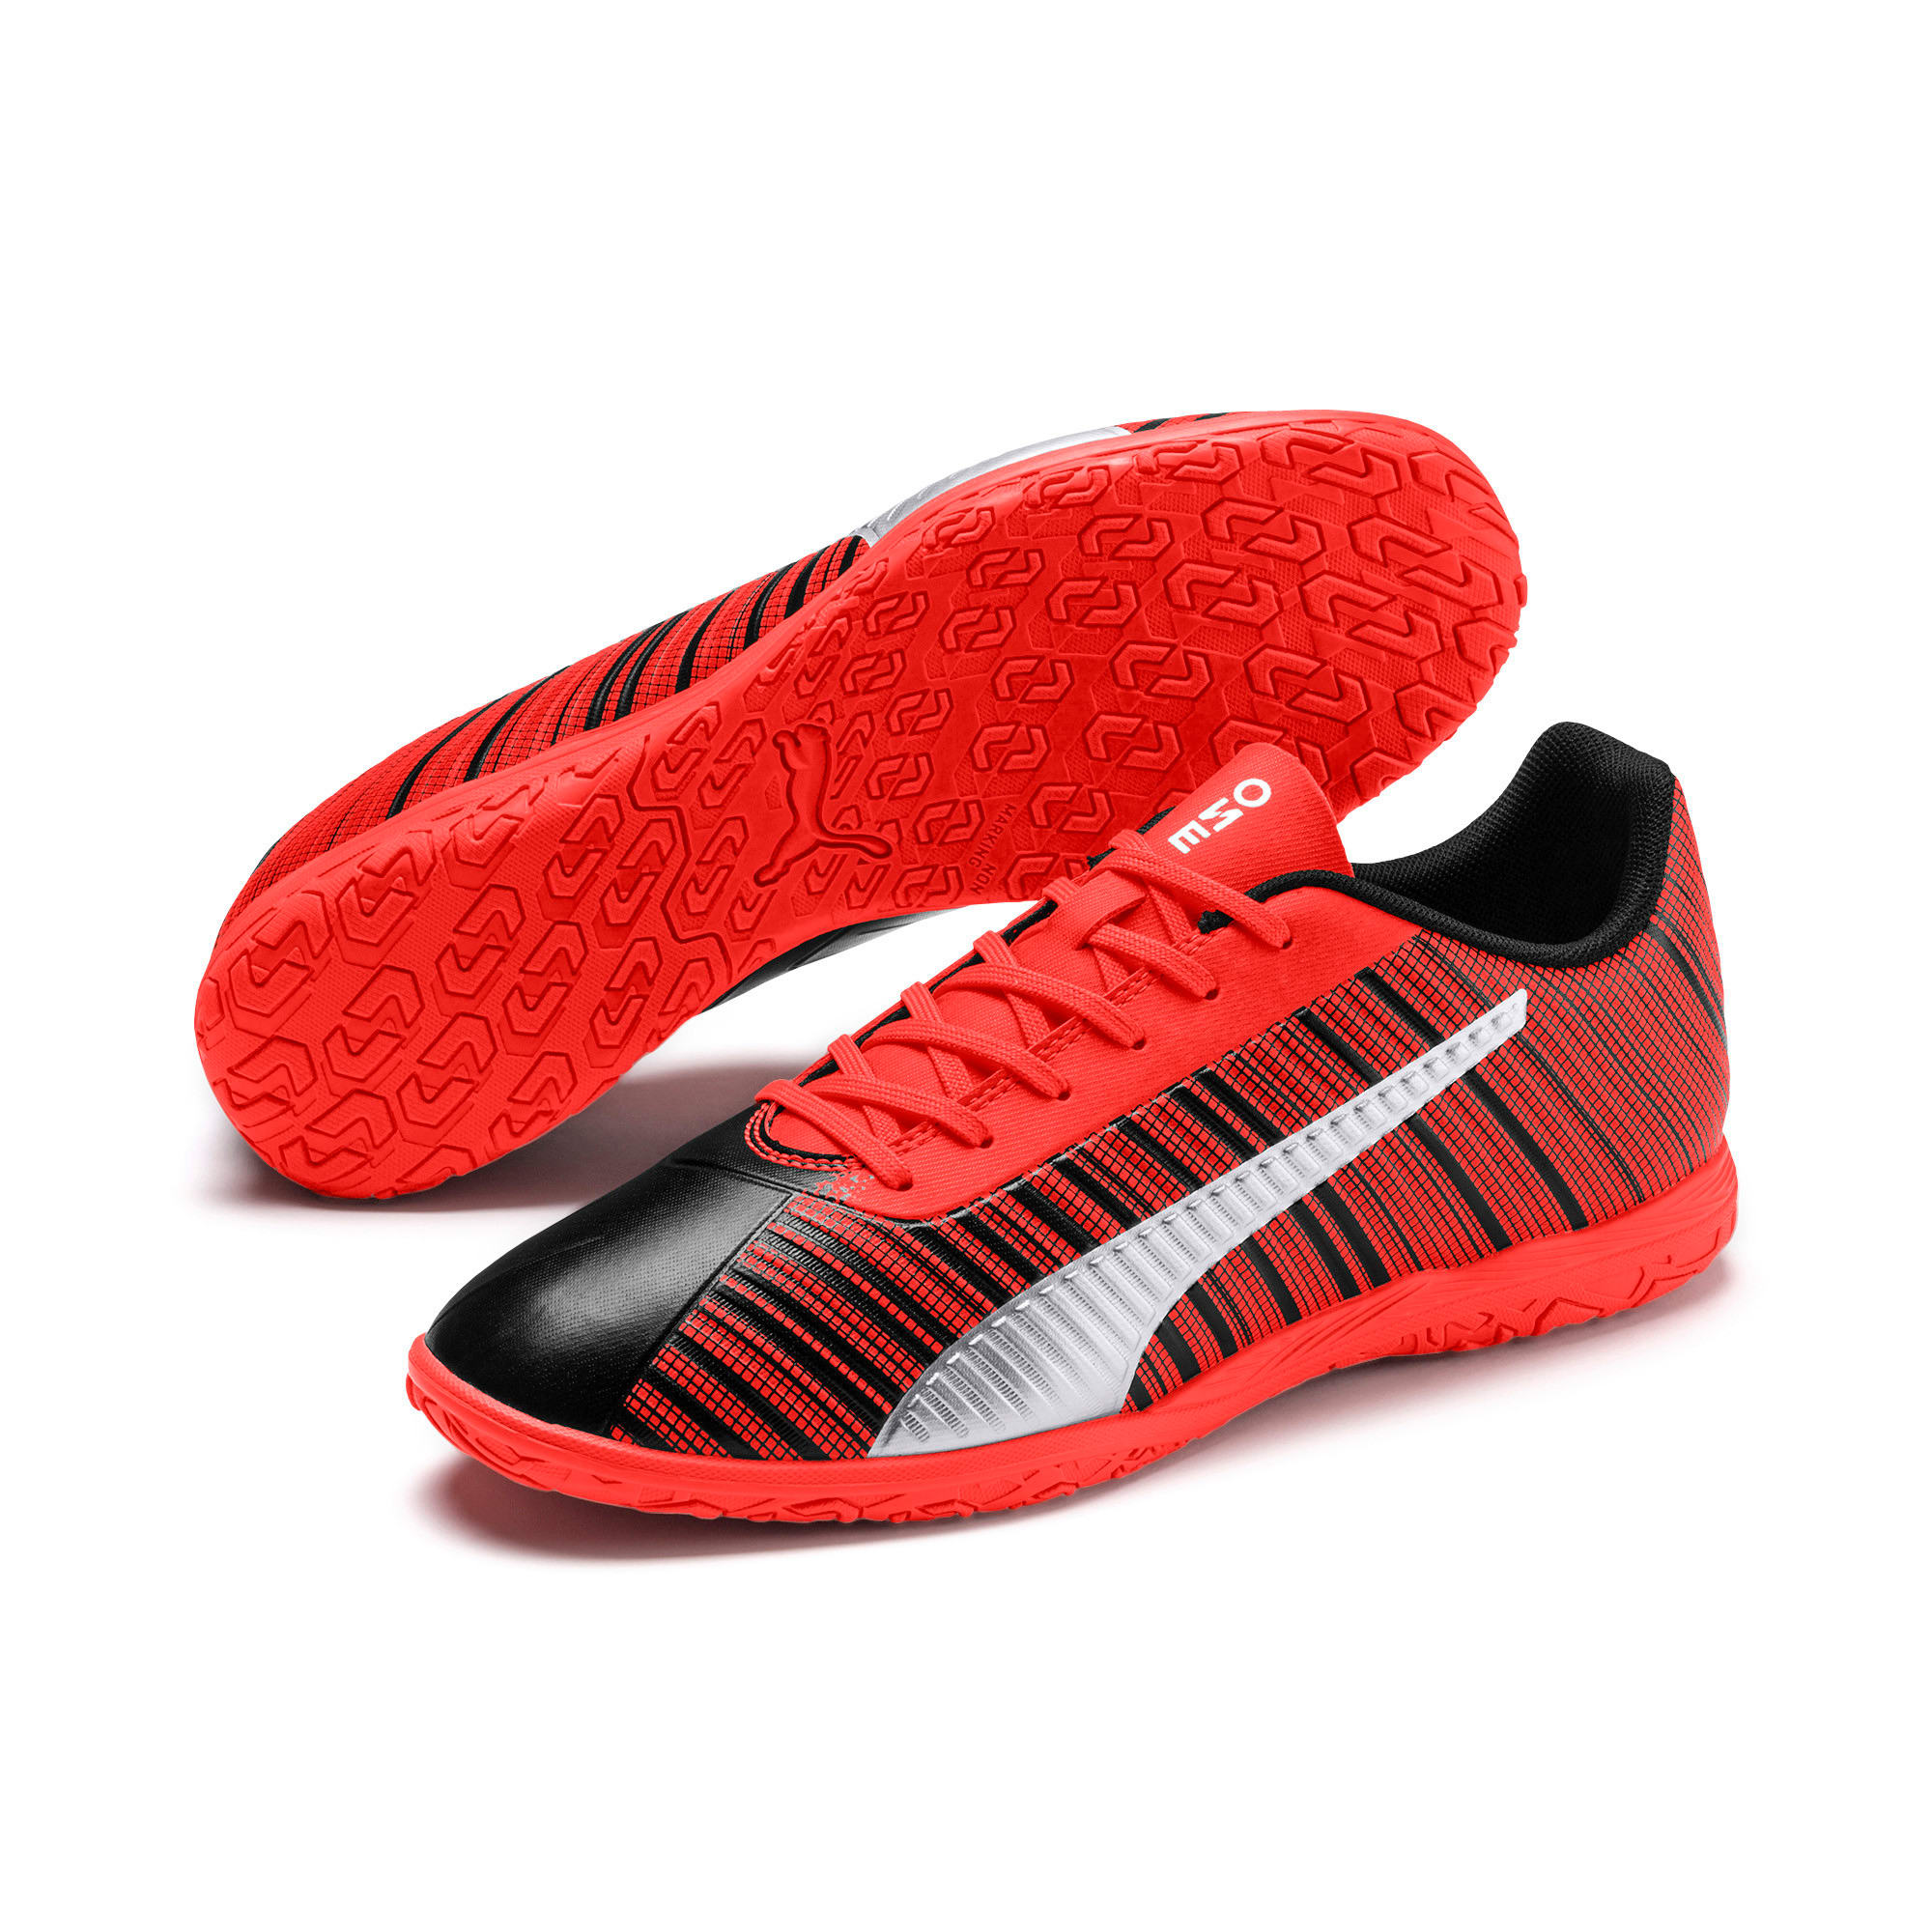 Thumbnail 3 of PUMA ONE 5.4 IT Men's Soccer Shoes, Black-Nrgy Red-Aged Silver, medium